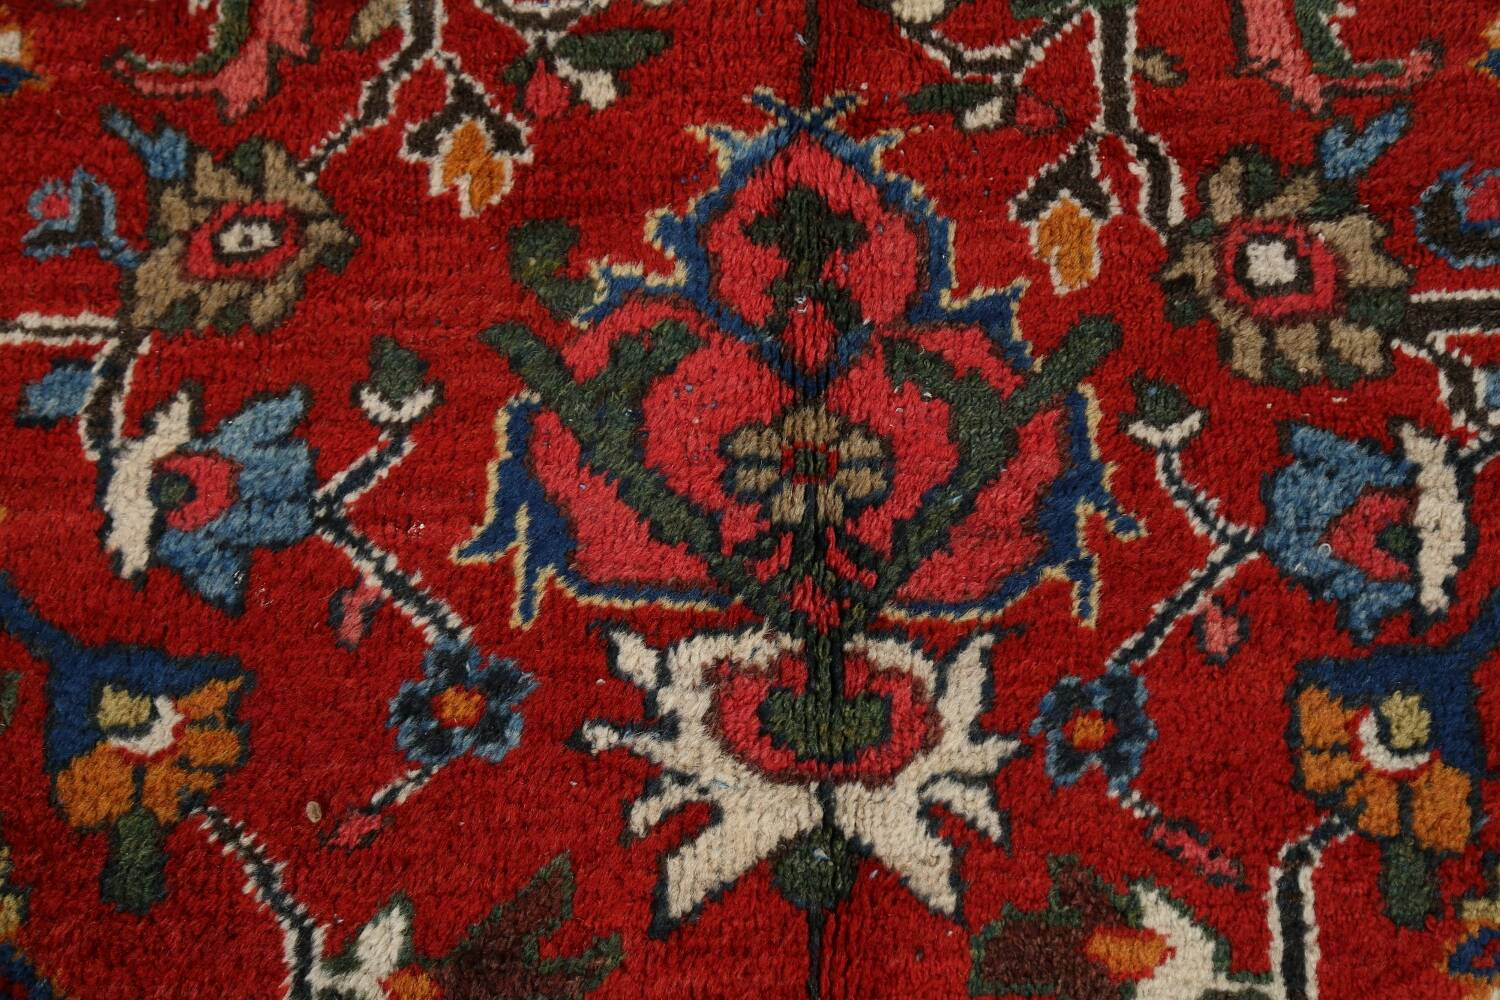 Antique 100% Vegetable Dye Sultanabad Persian Area Rug 12x17 image 10